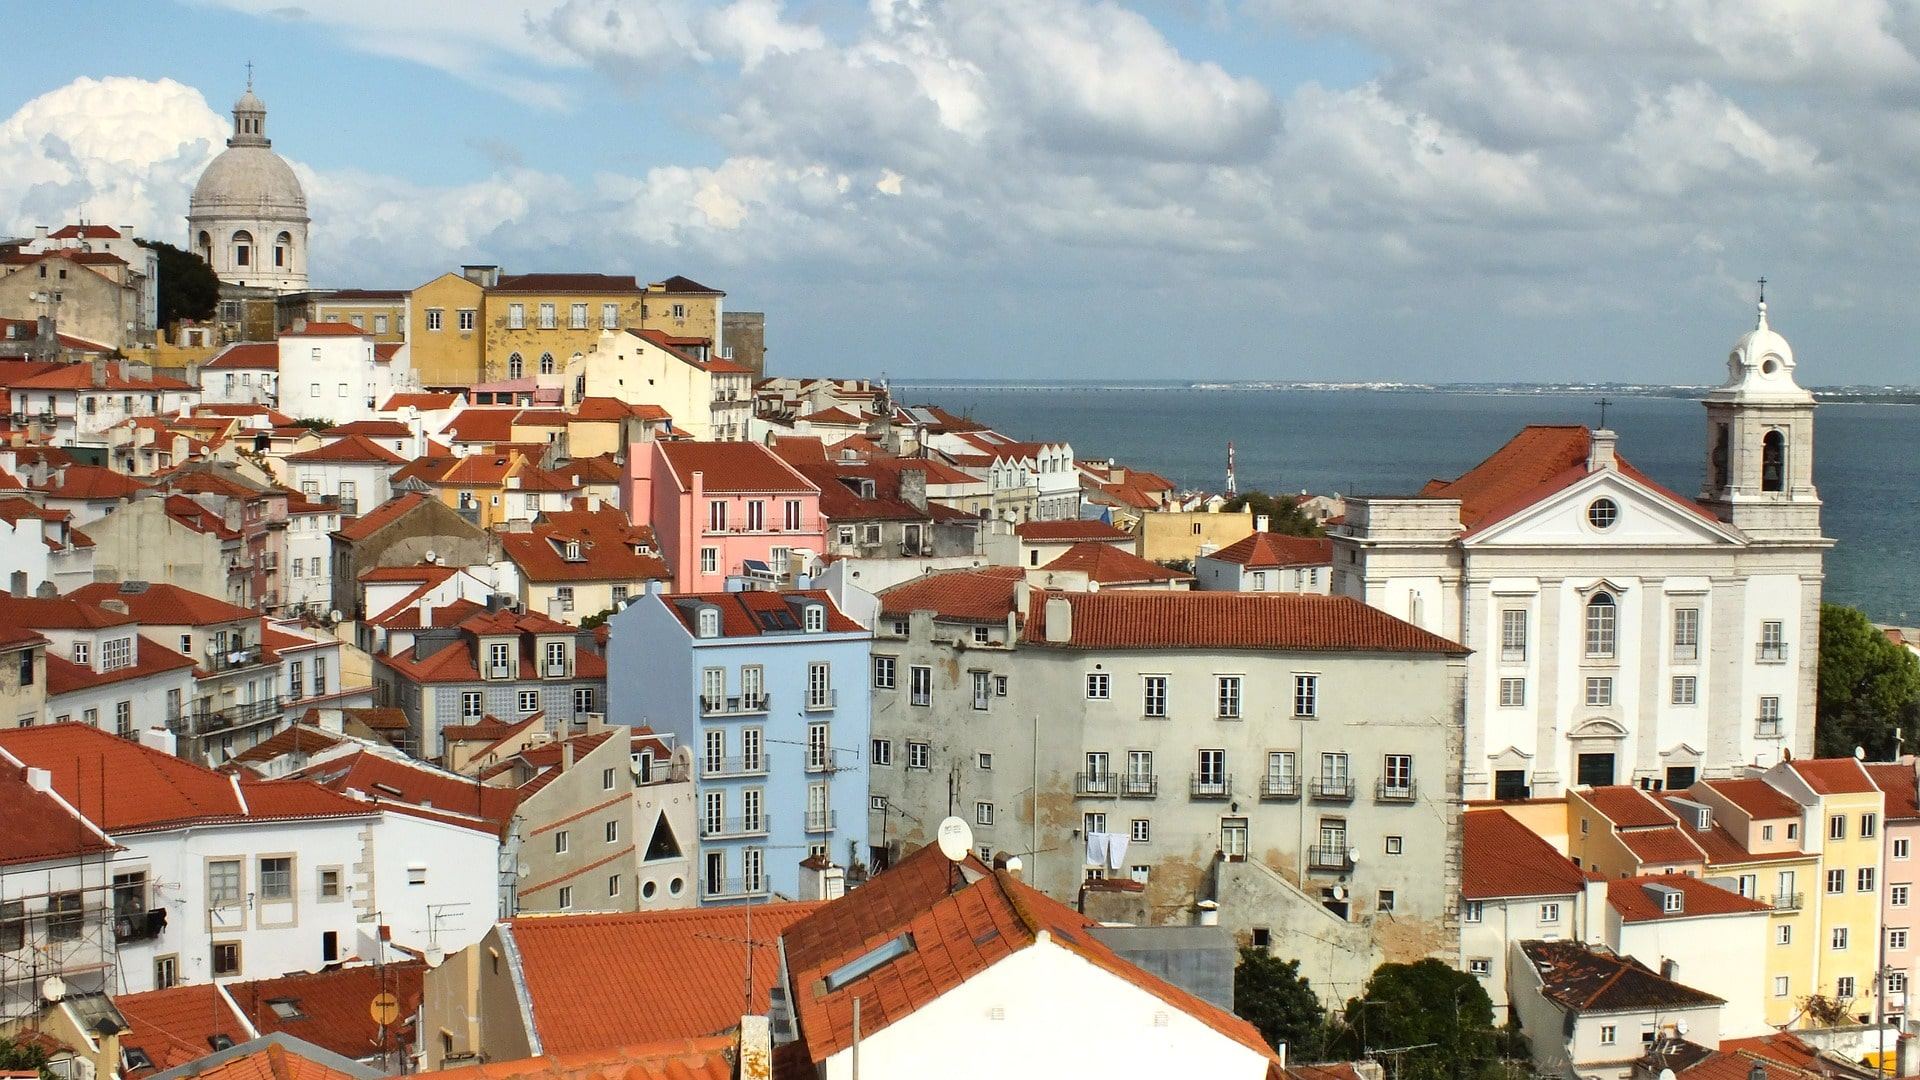 Exploring Alfama in Lisbon is an amazing thing to do in Portugal